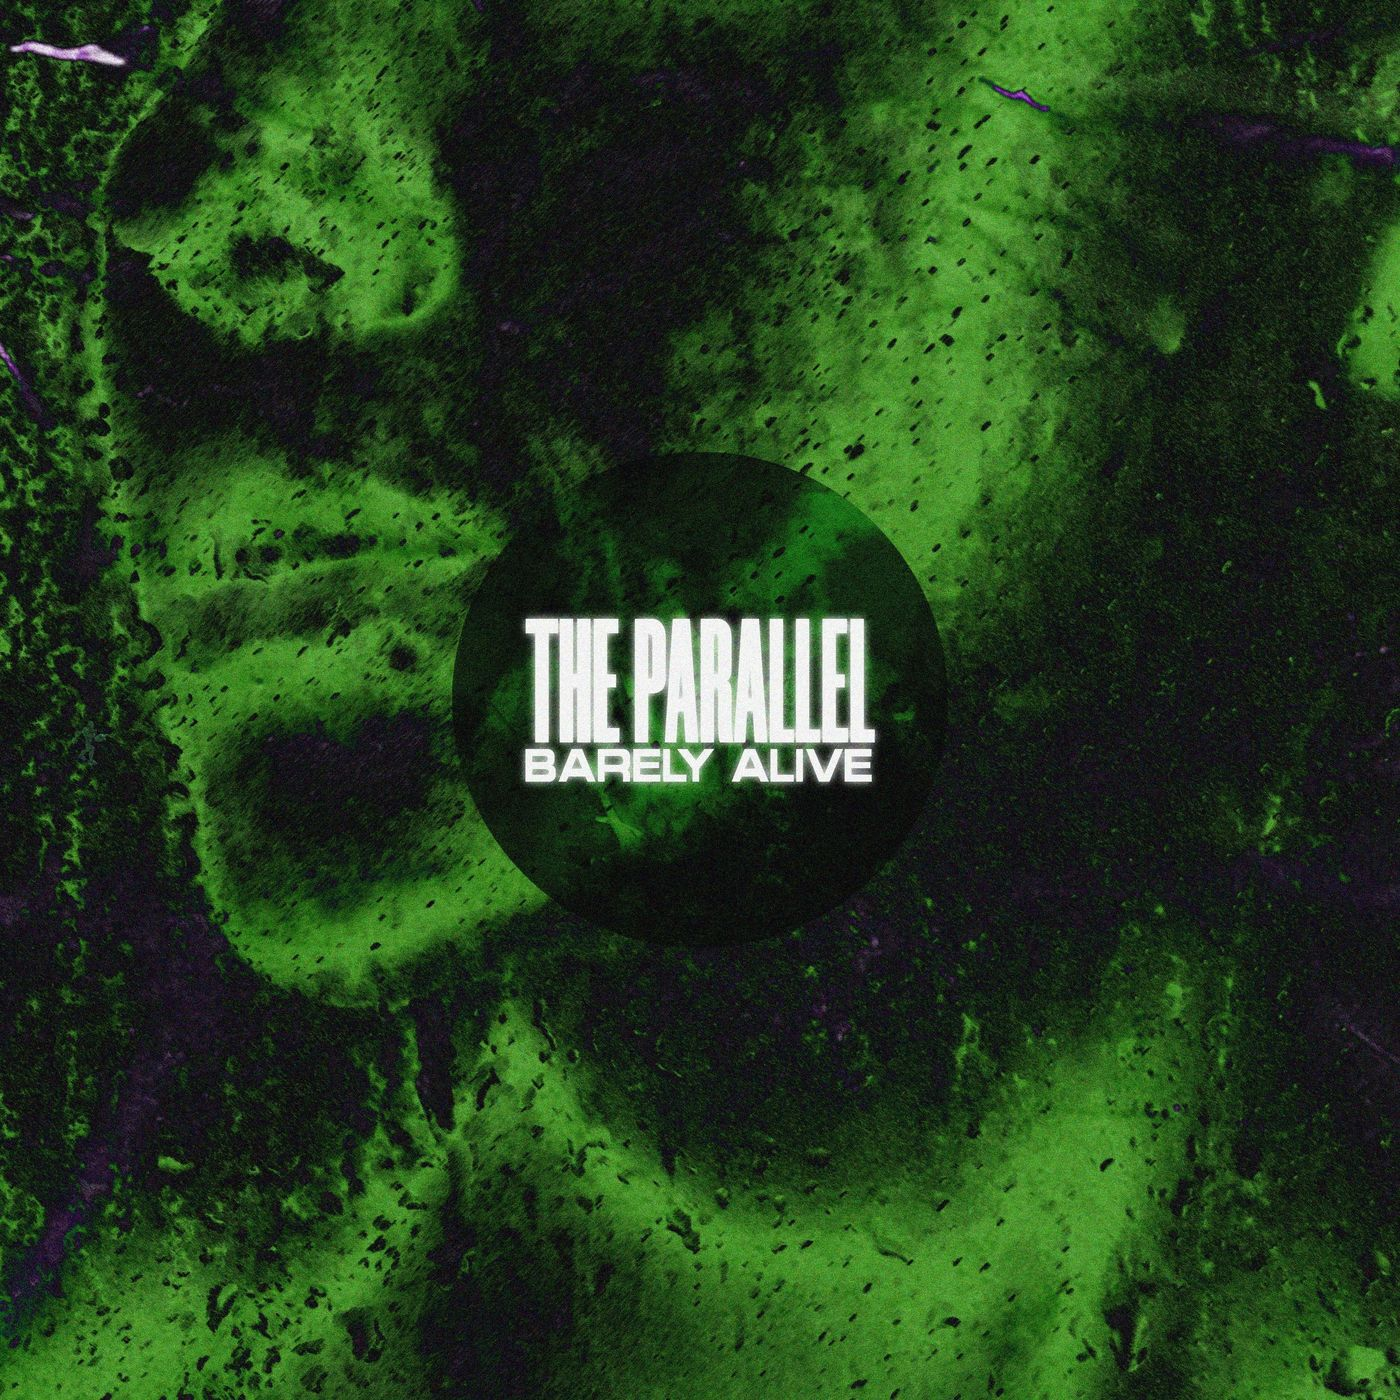 The Parallel - Barely Alive [single] (2021)